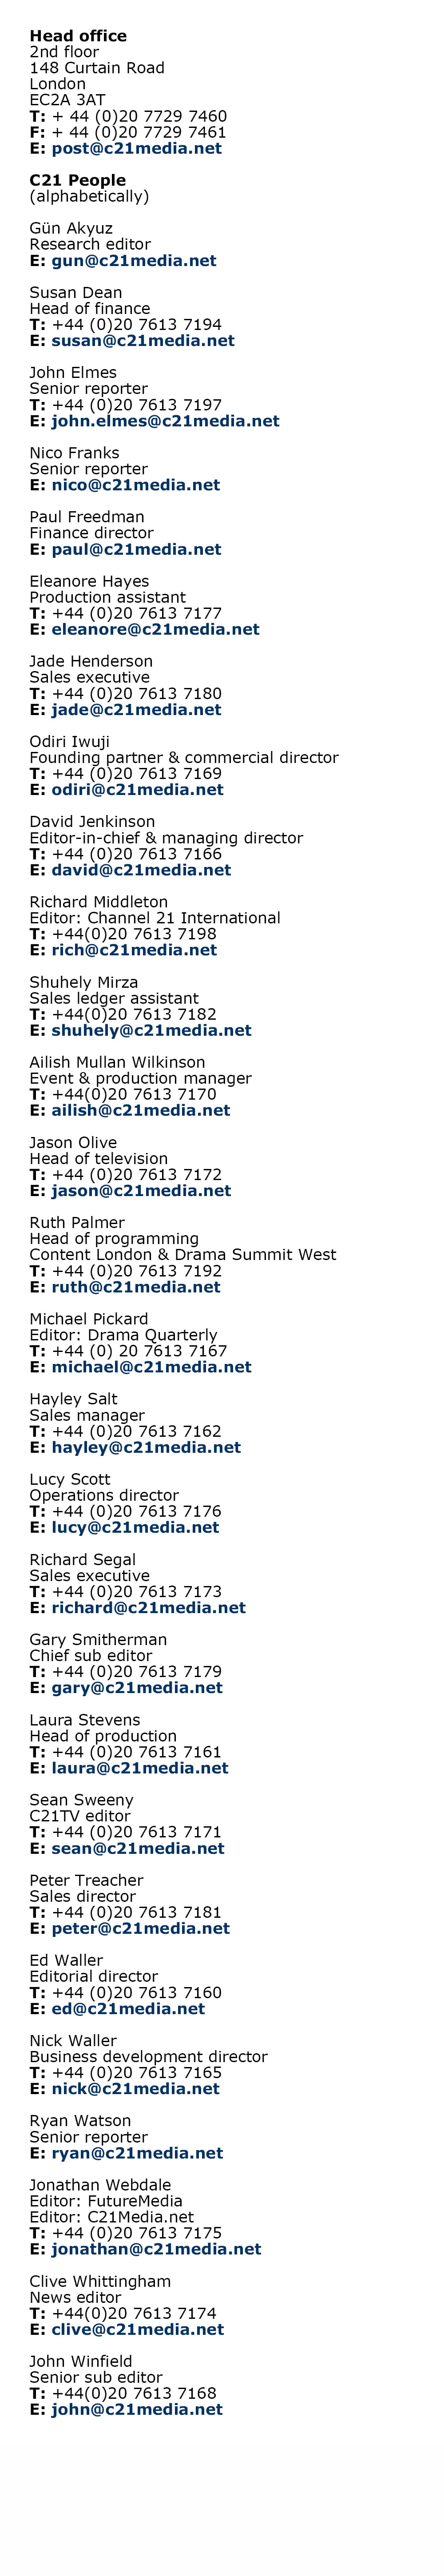 Web Contacts August 2018